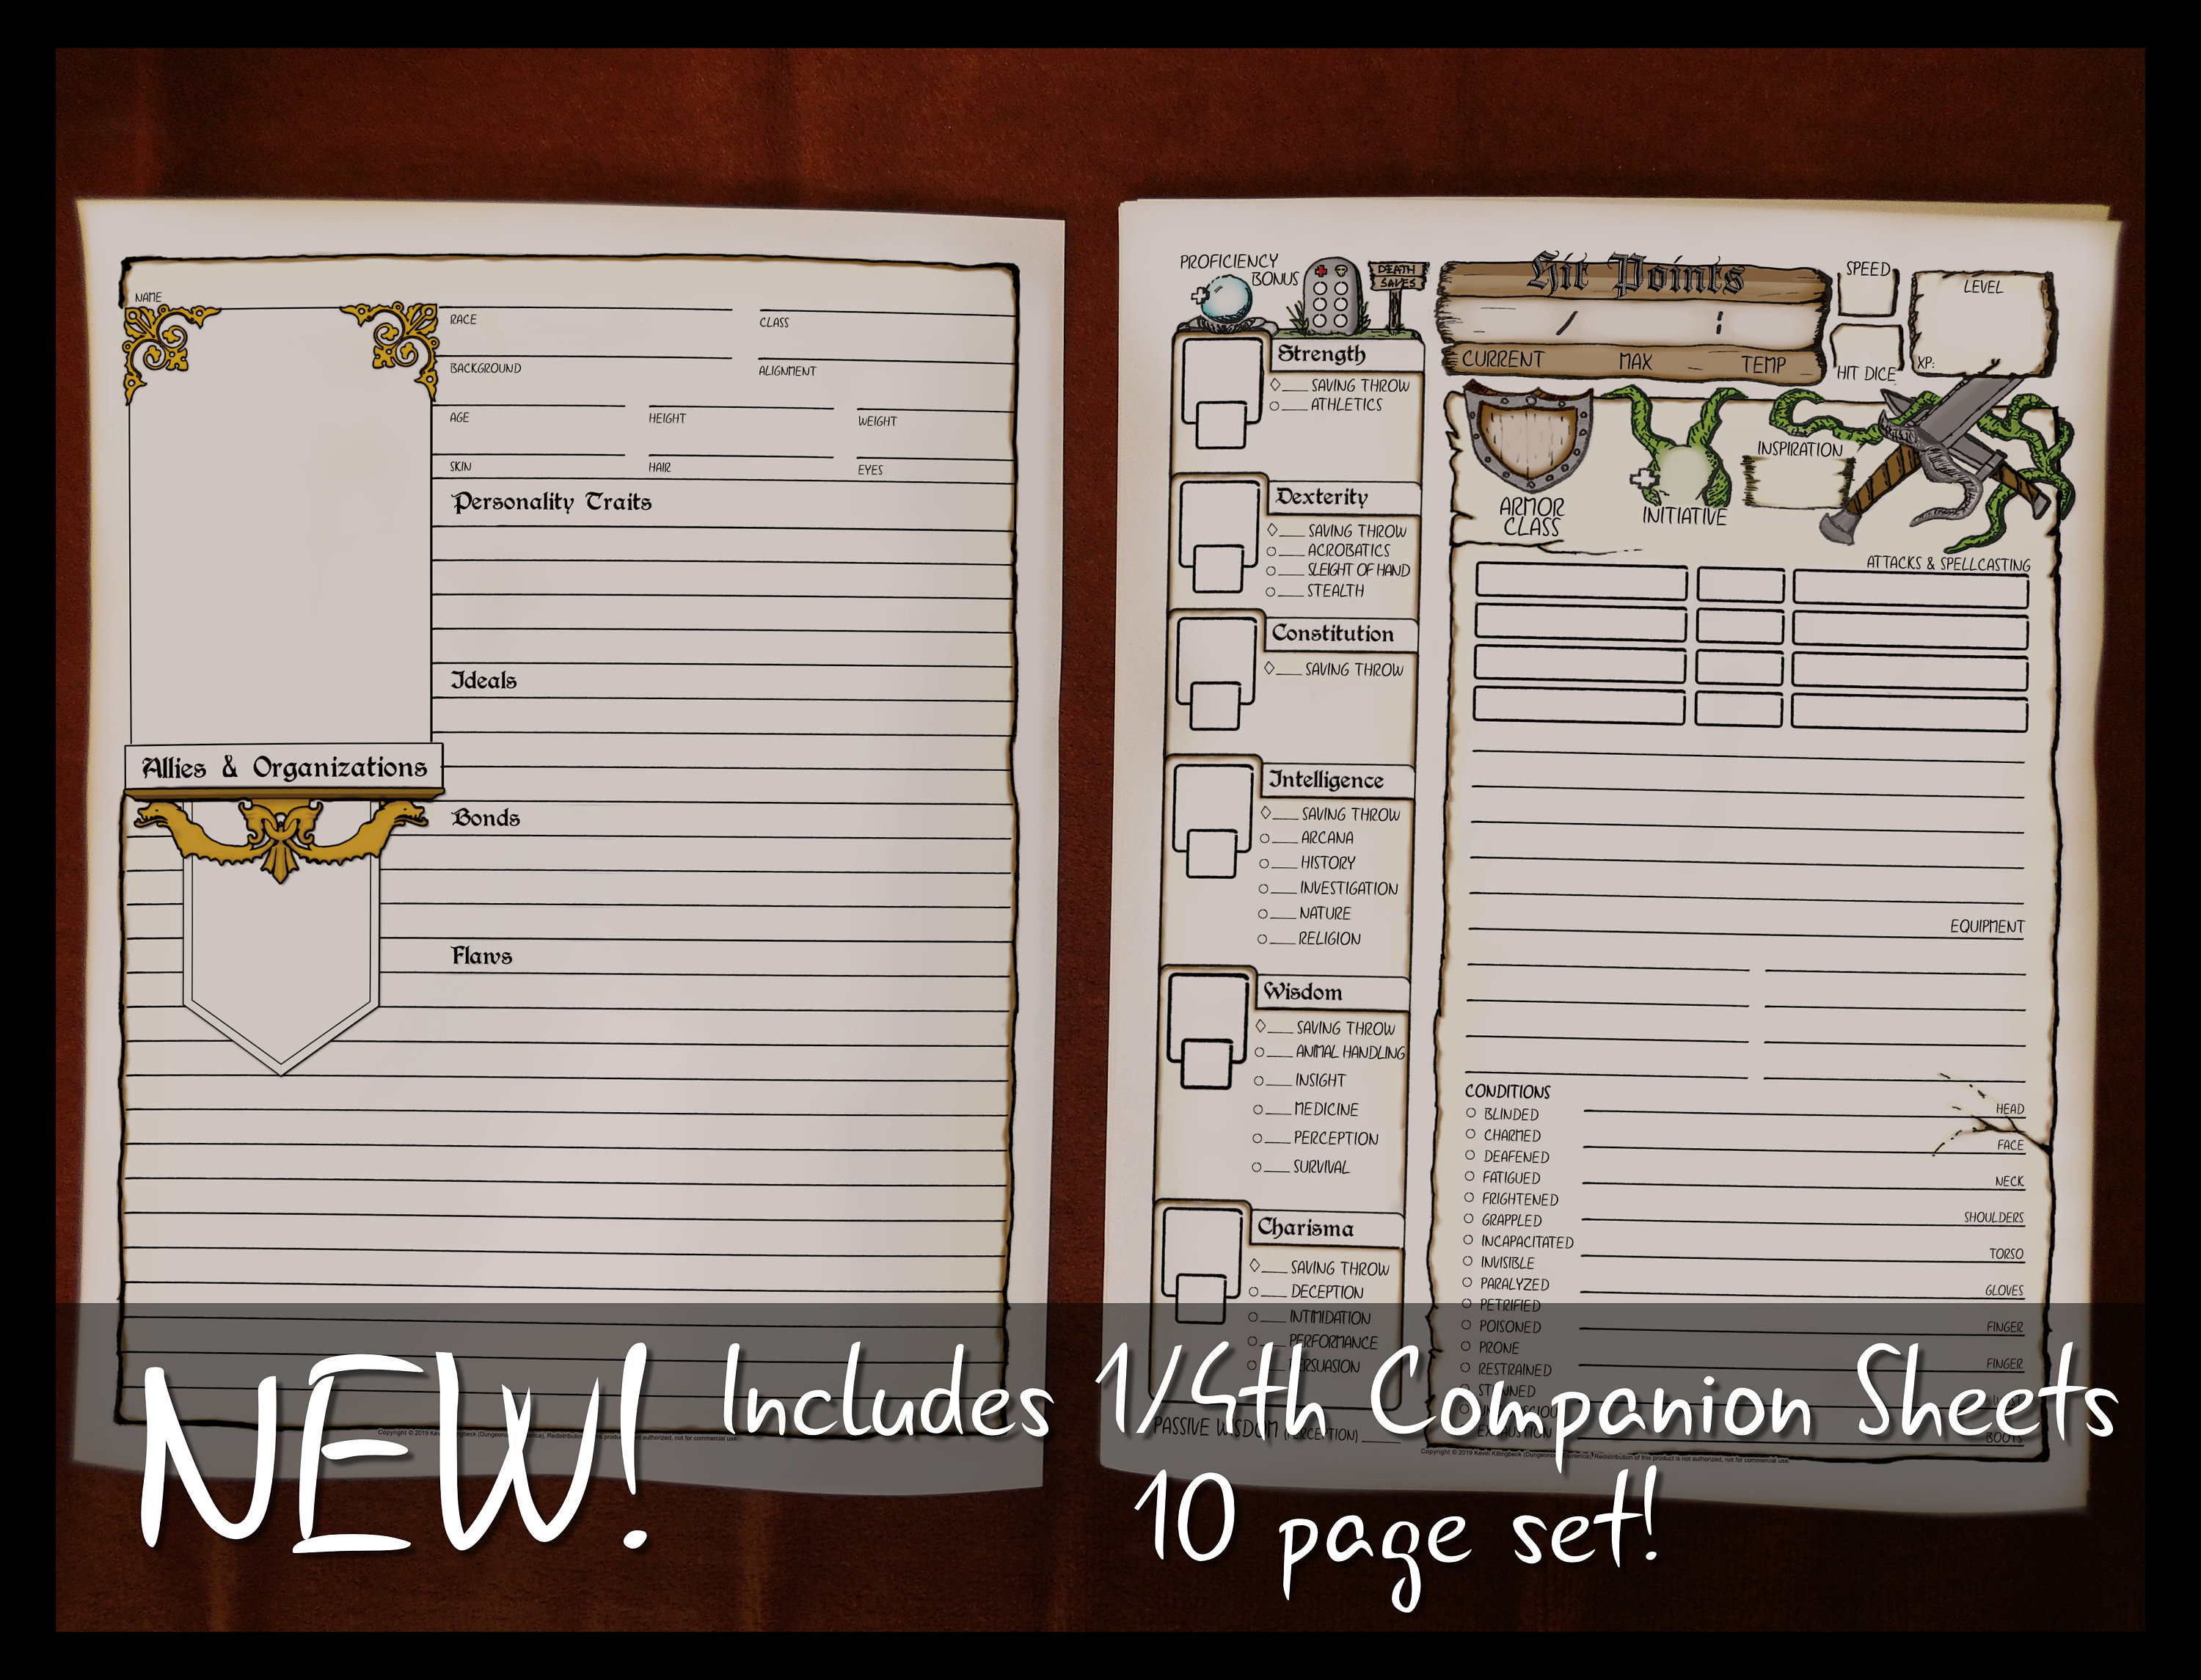 photograph regarding 5e Printable Character Sheet named DD 5e Entire Dimension Temperament Sheets 8.5x11 Printable Dungeons and Dragons Identity Sheet DnD Function Participating in Match Electronic Down load